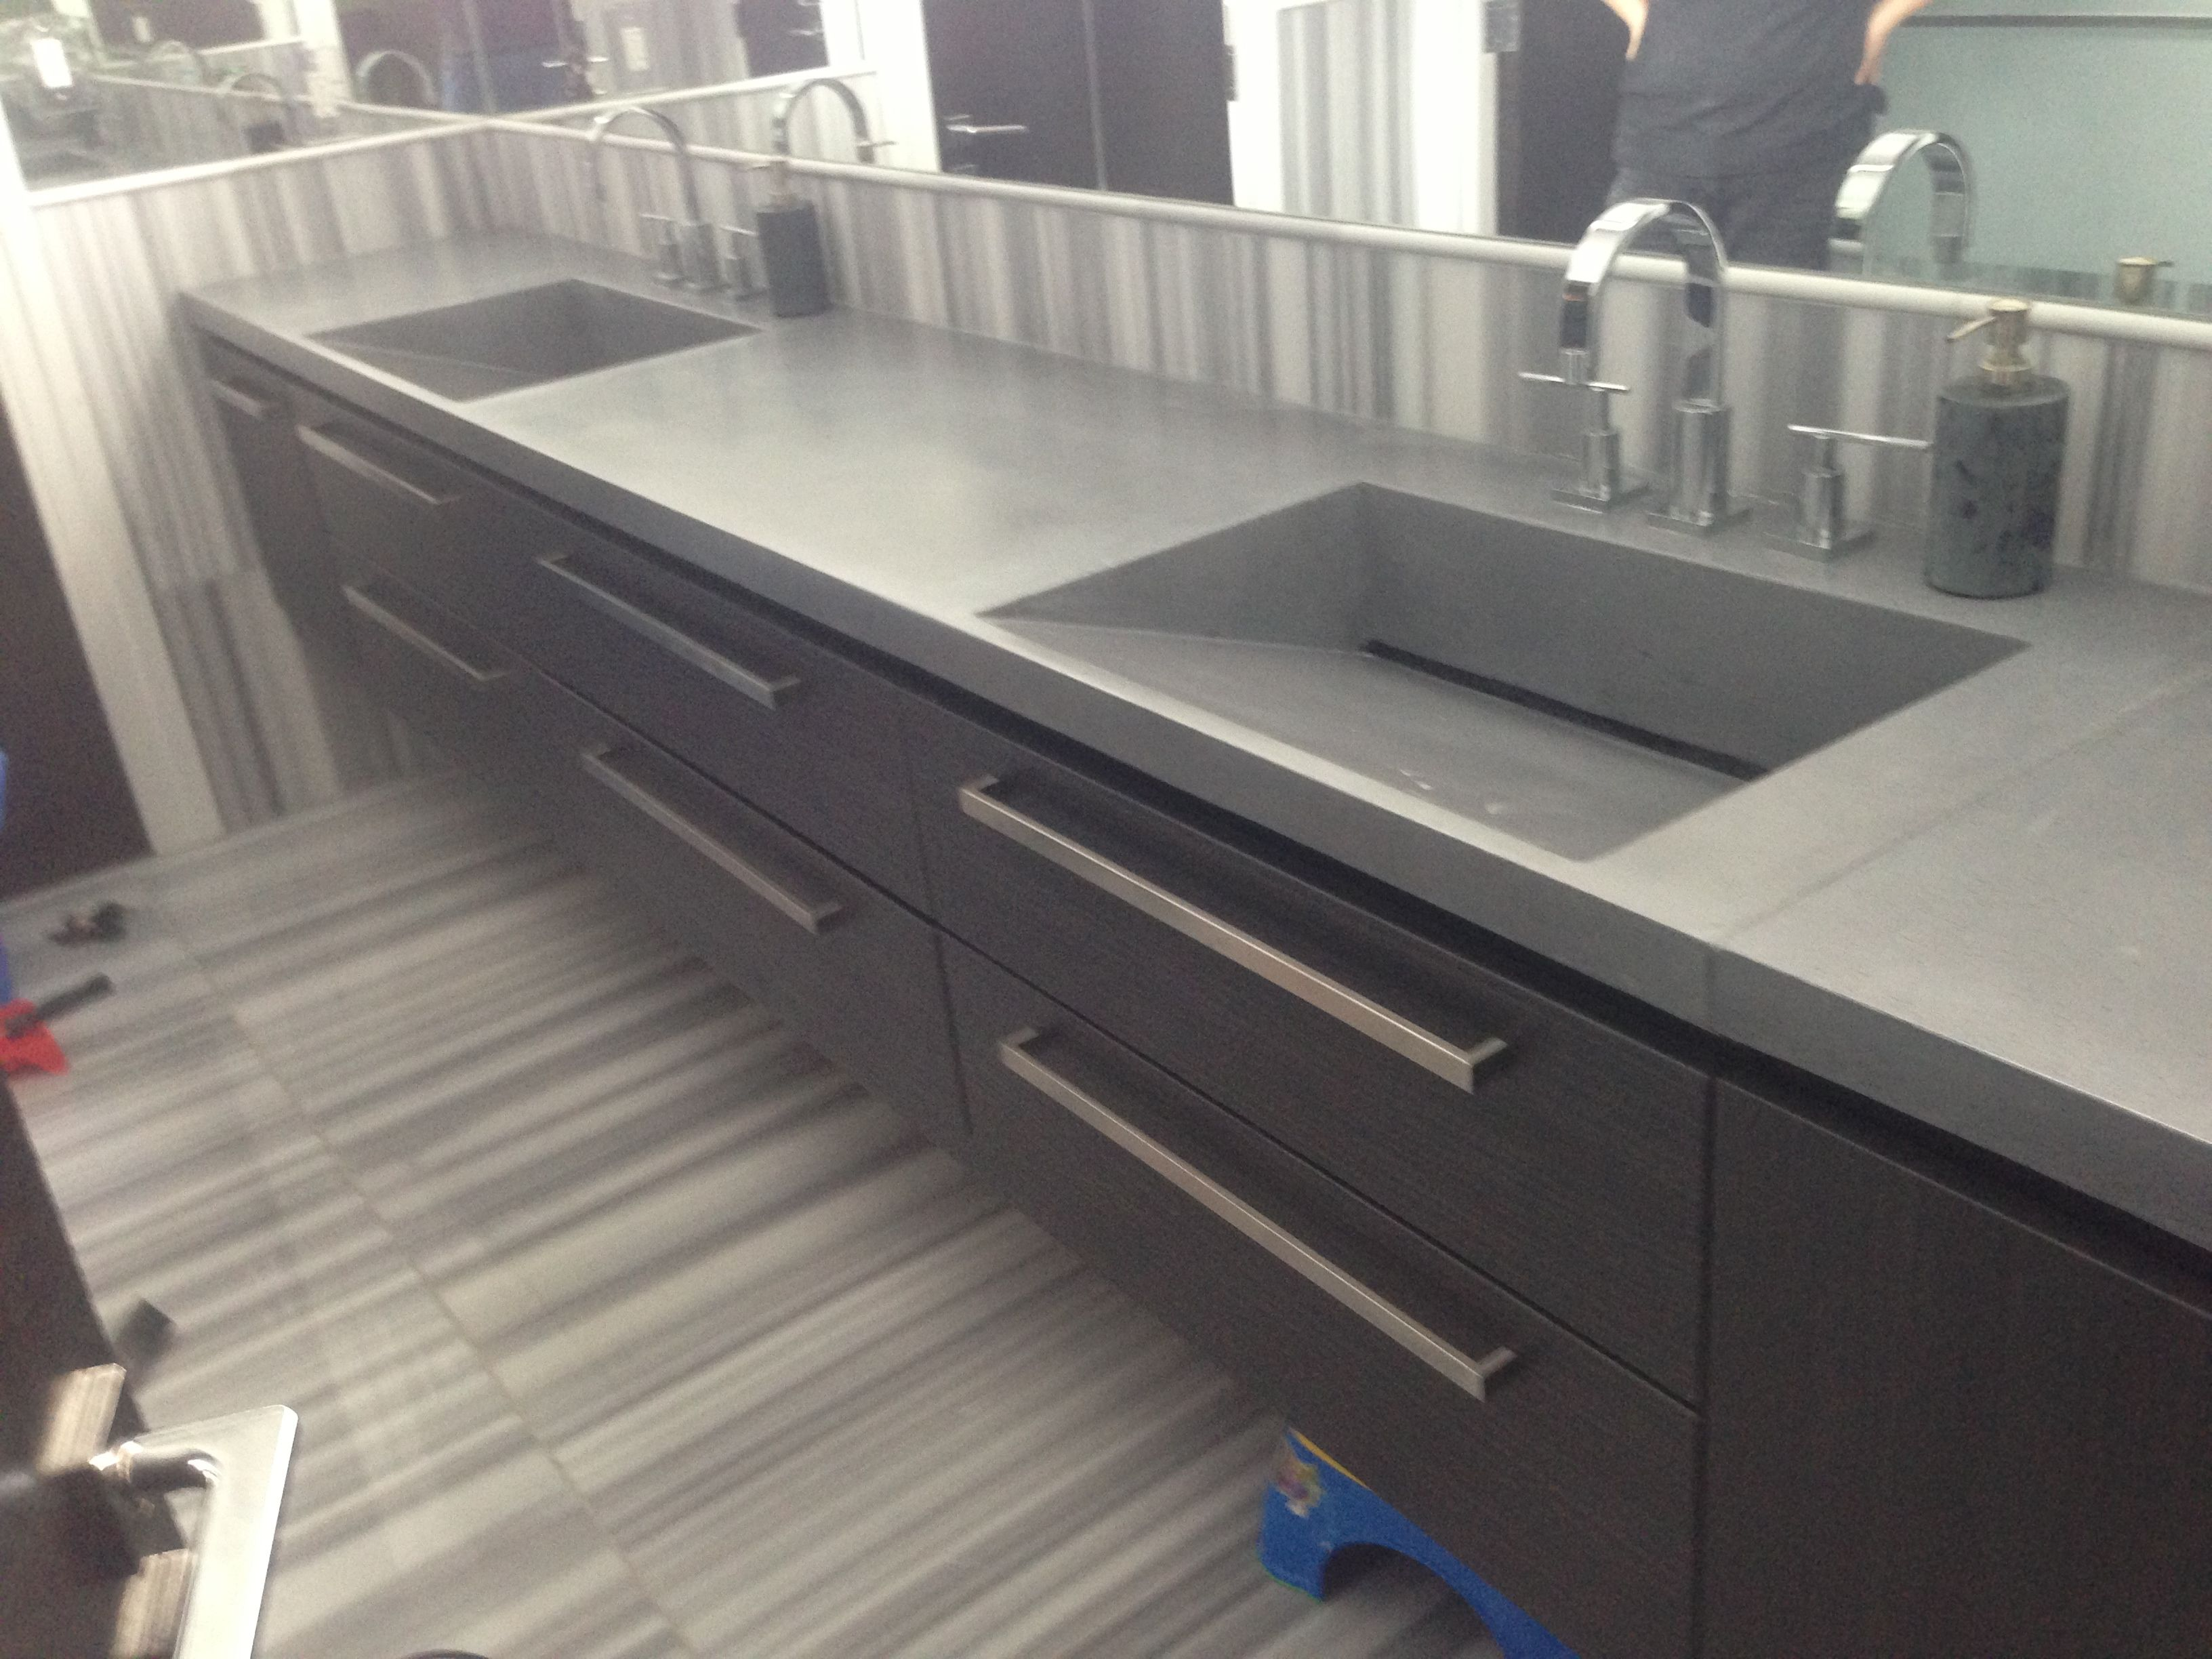 8 Double Sink Vanity Tops By Evergreen Ideas Double Sink Vanity Top Double Sink Vanity Sink